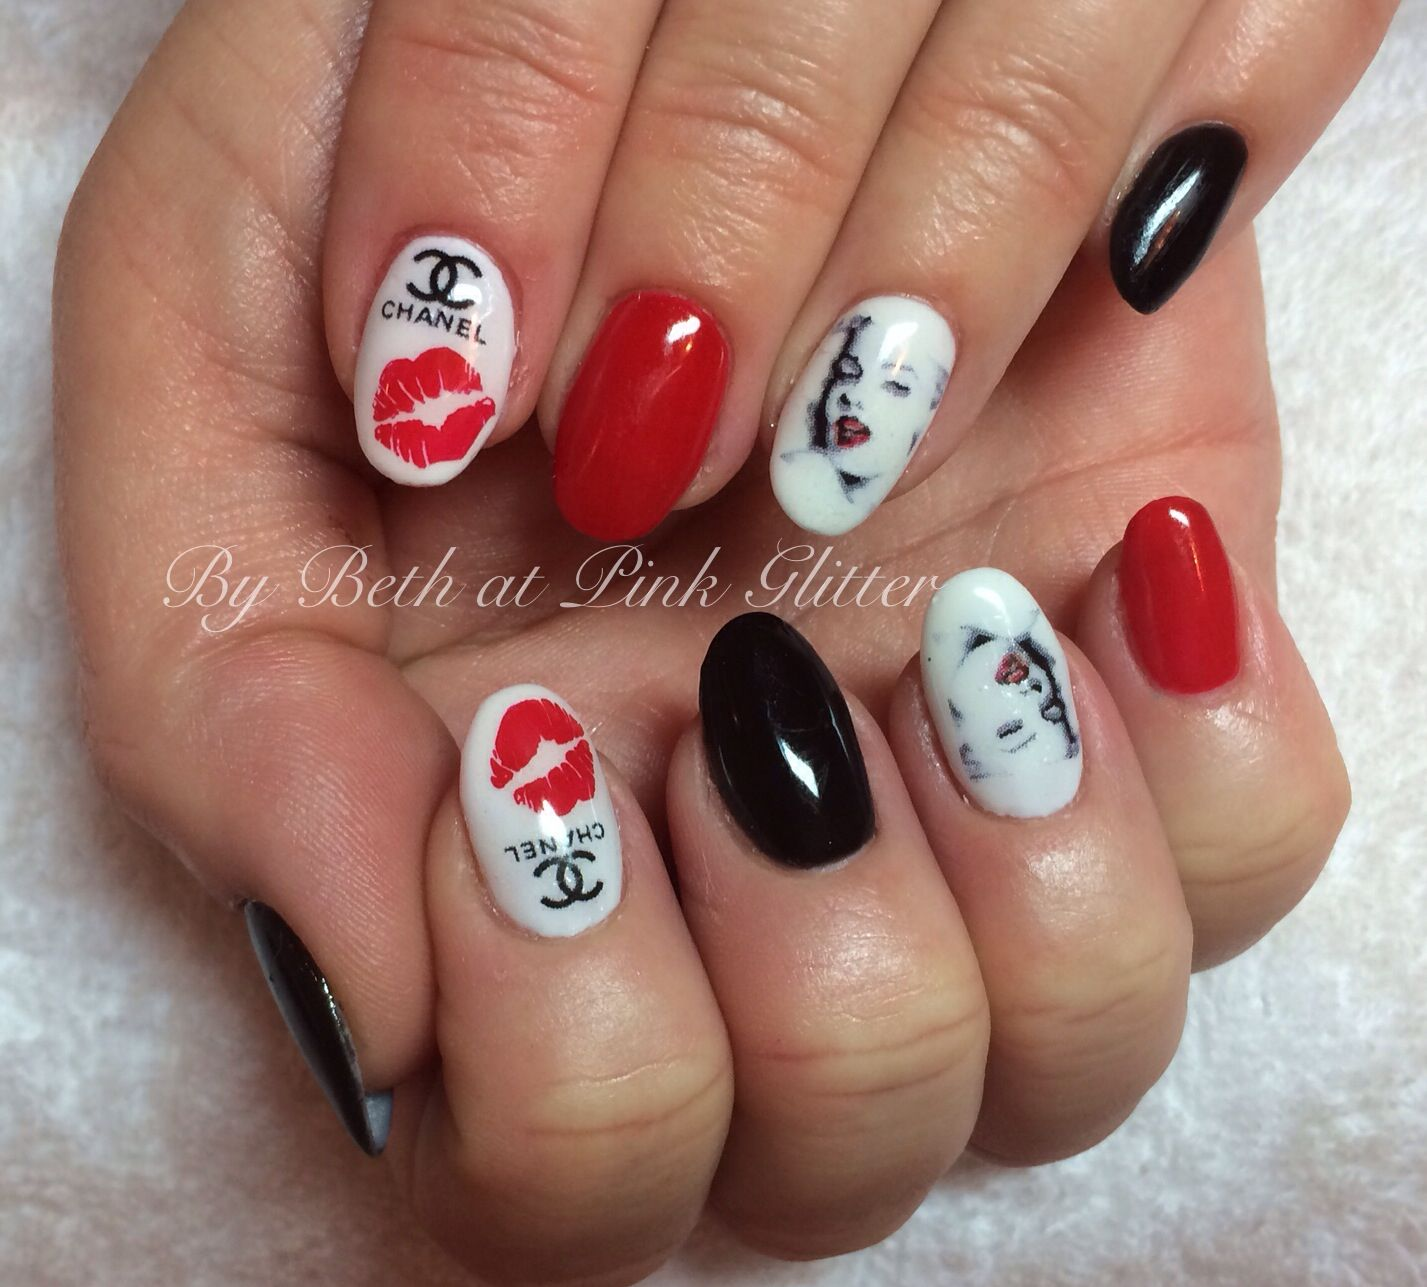 Marilyn Monroe Nail Art | Fancy nail art | Pinterest | Nails ...